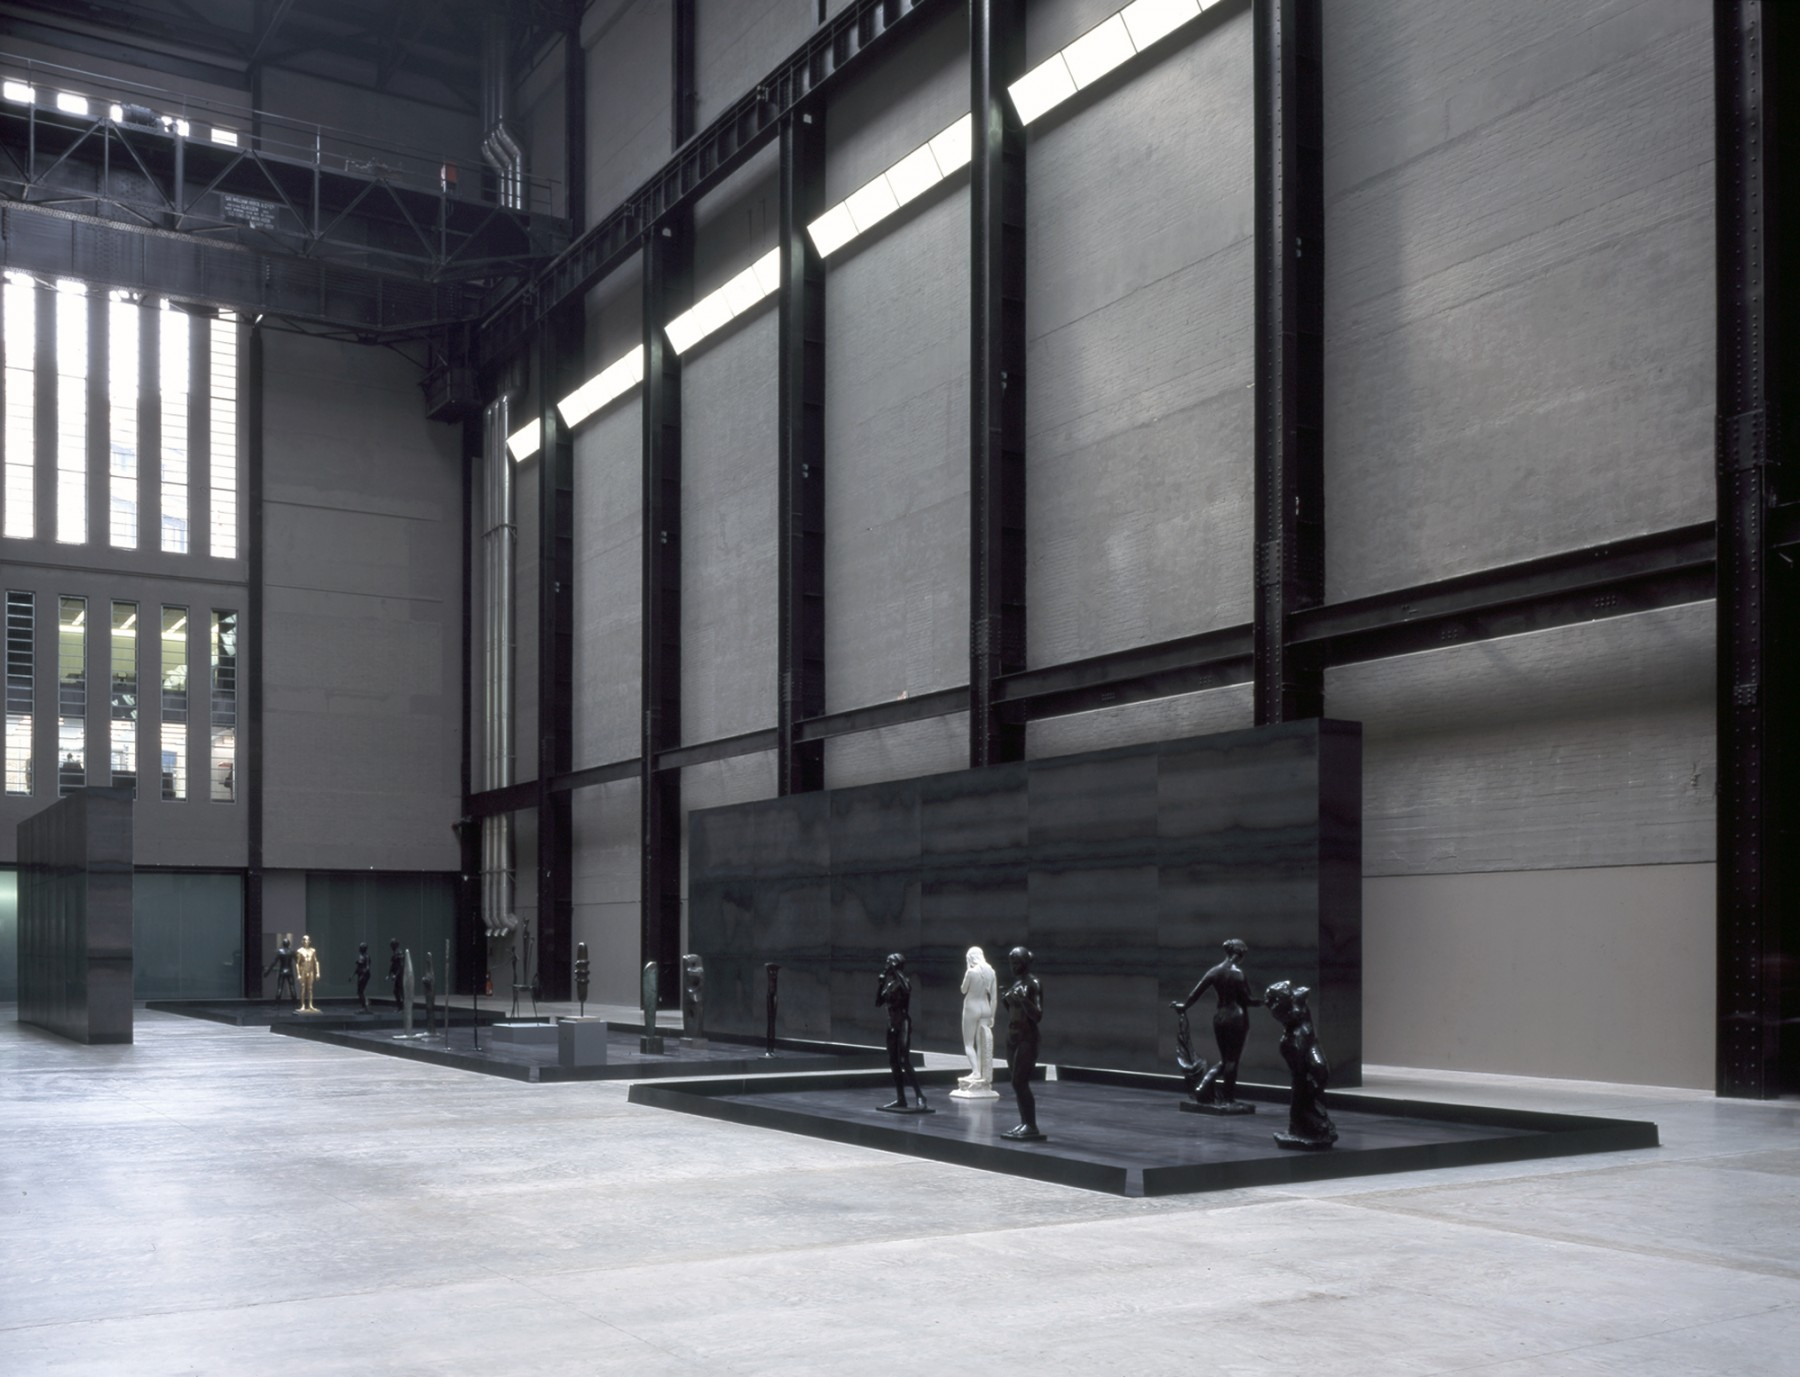 Upright-Figure-Tate-Britain-London-design-exhibition-Jamie-Fobert-Architects-Turbine-Hall-3